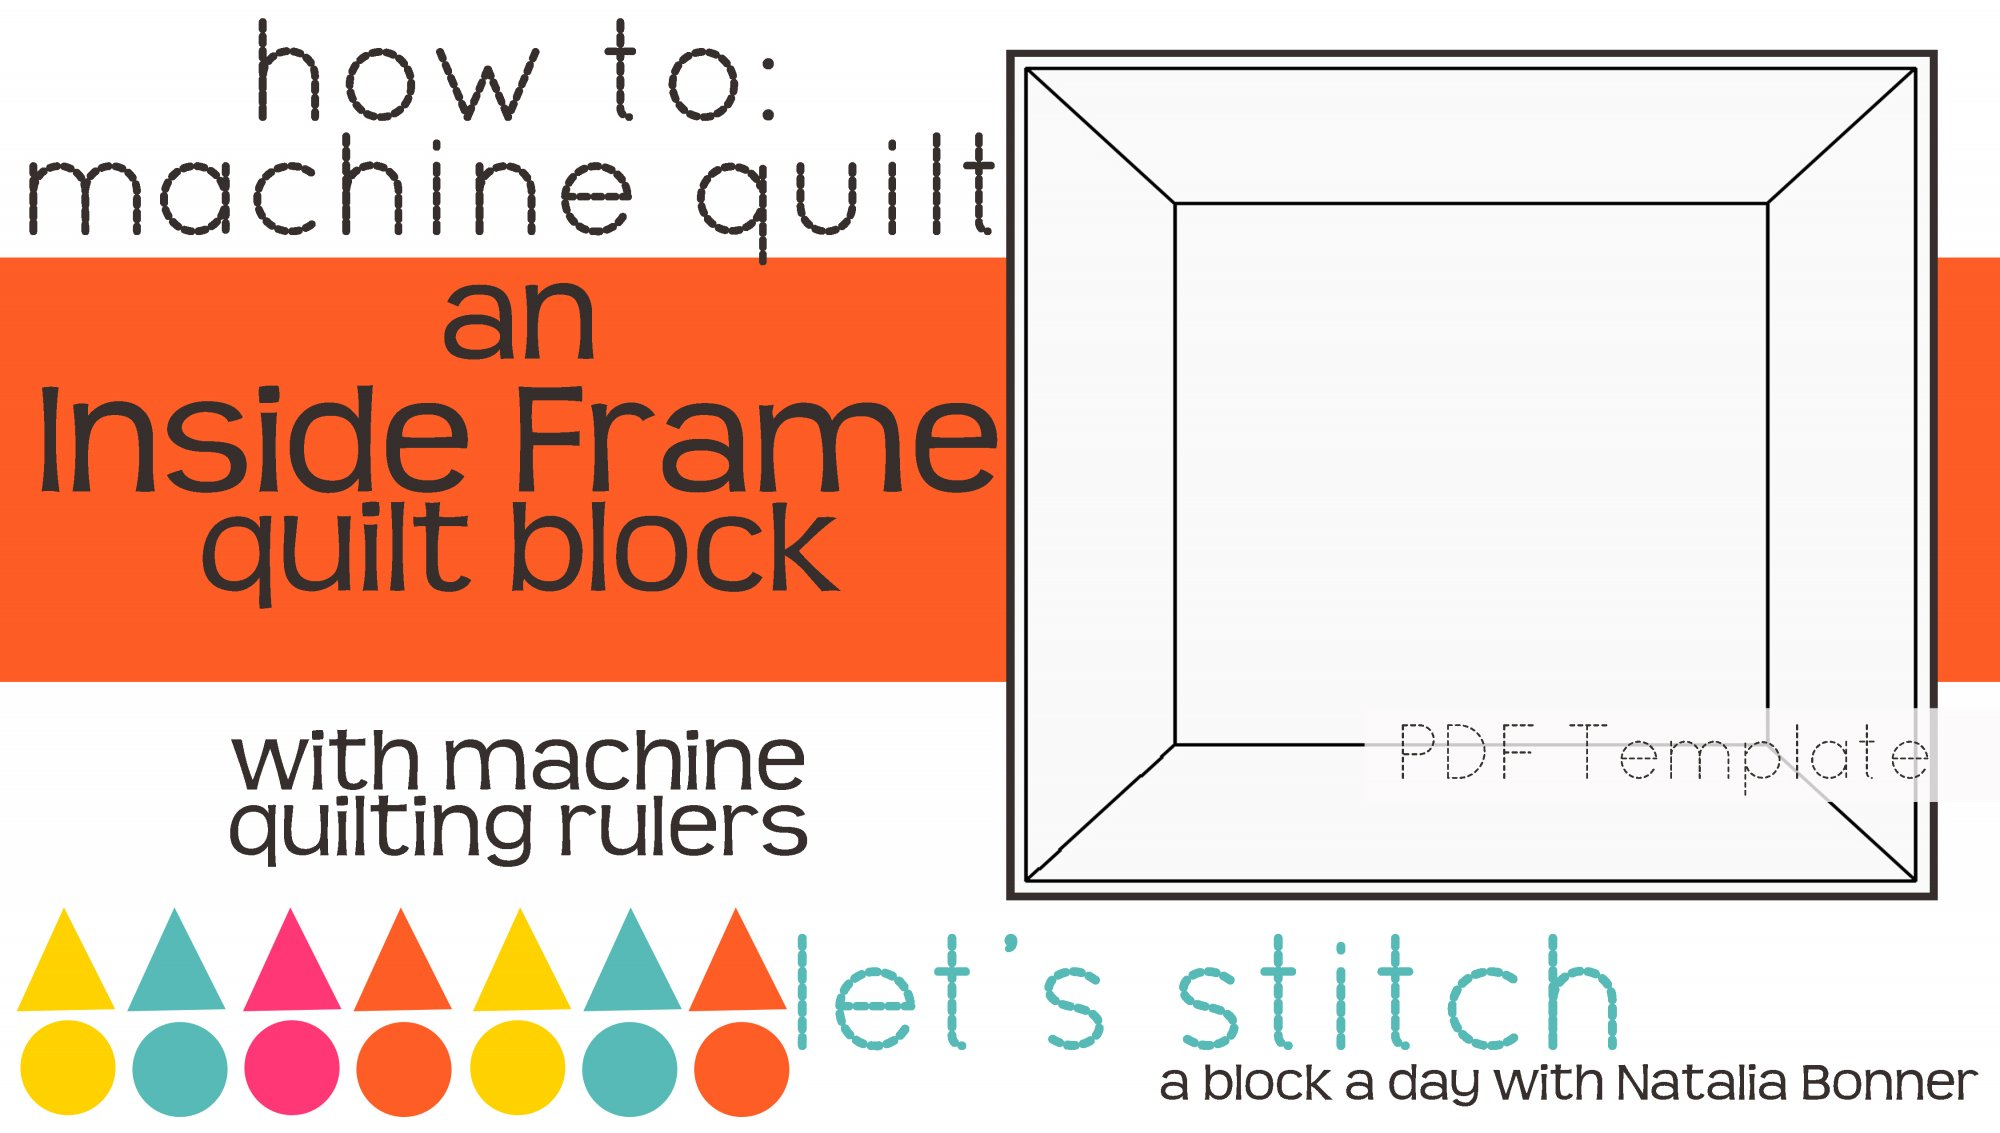 Let's Stitch - A Block a Day With Natalia Bonner - PDF - Inside Frame